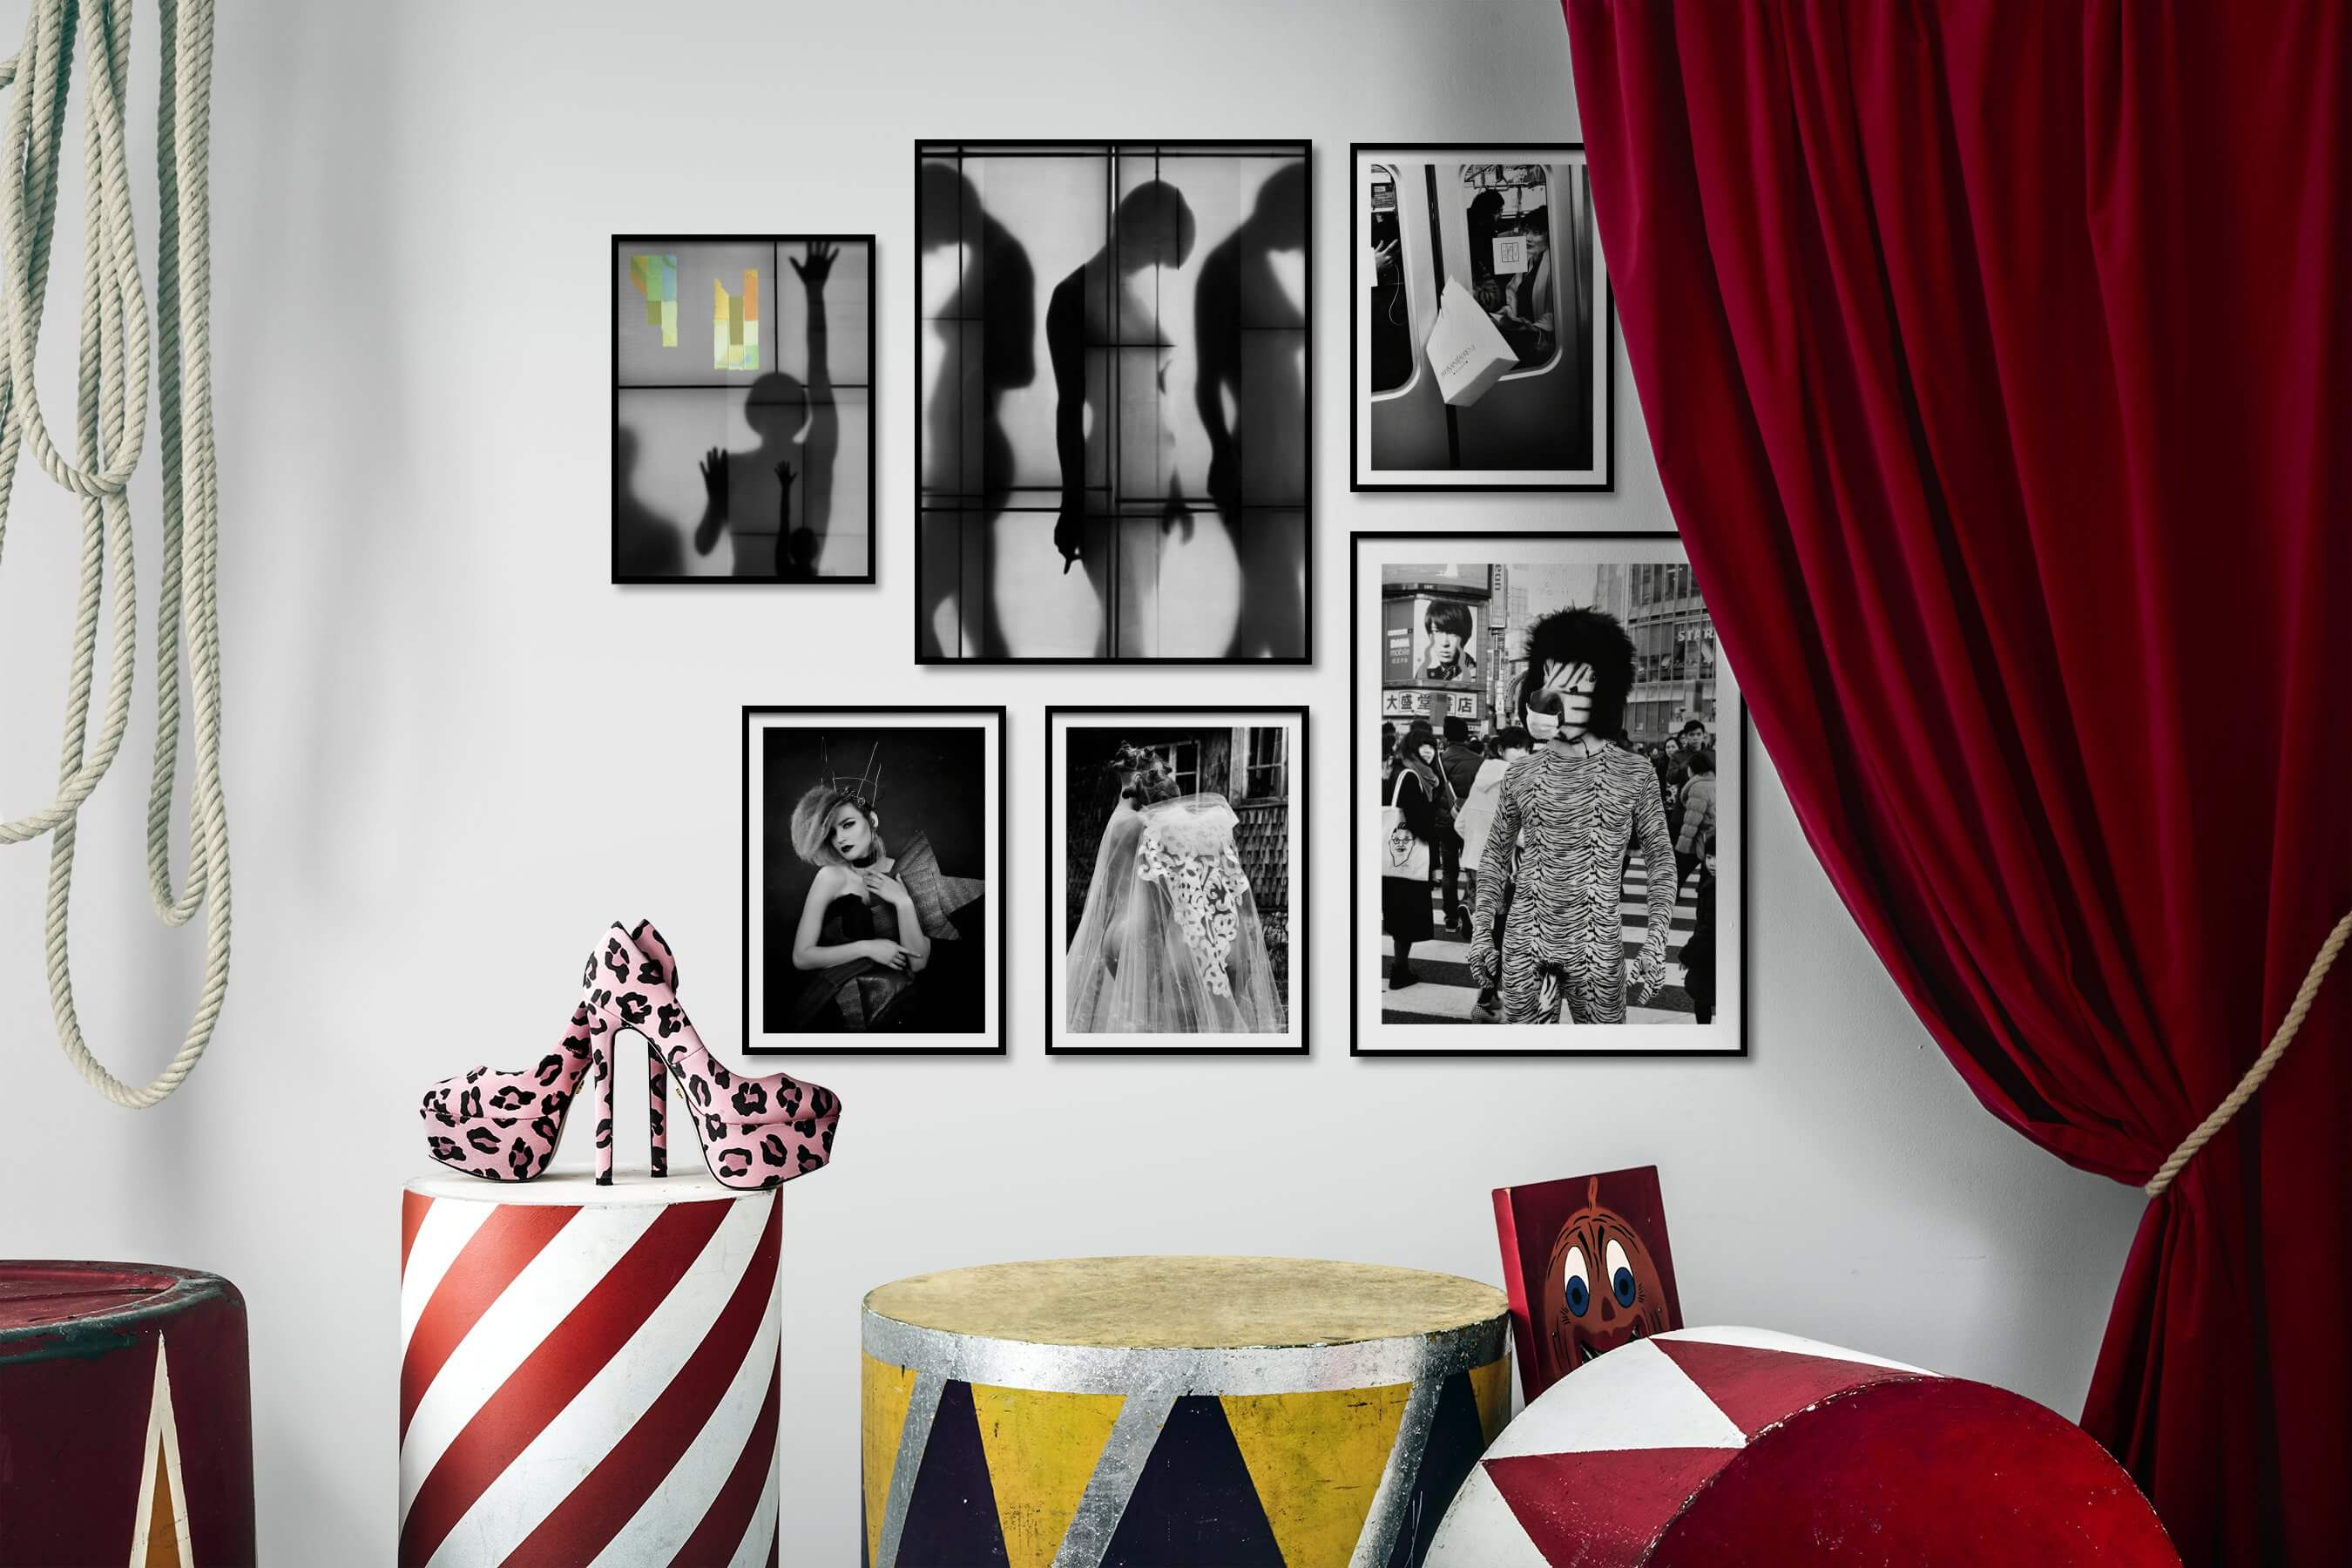 Gallery wall idea with six framed pictures arranged on a wall depicting Artsy, For the Moderate, Black & White, Fashion & Beauty, and City Life